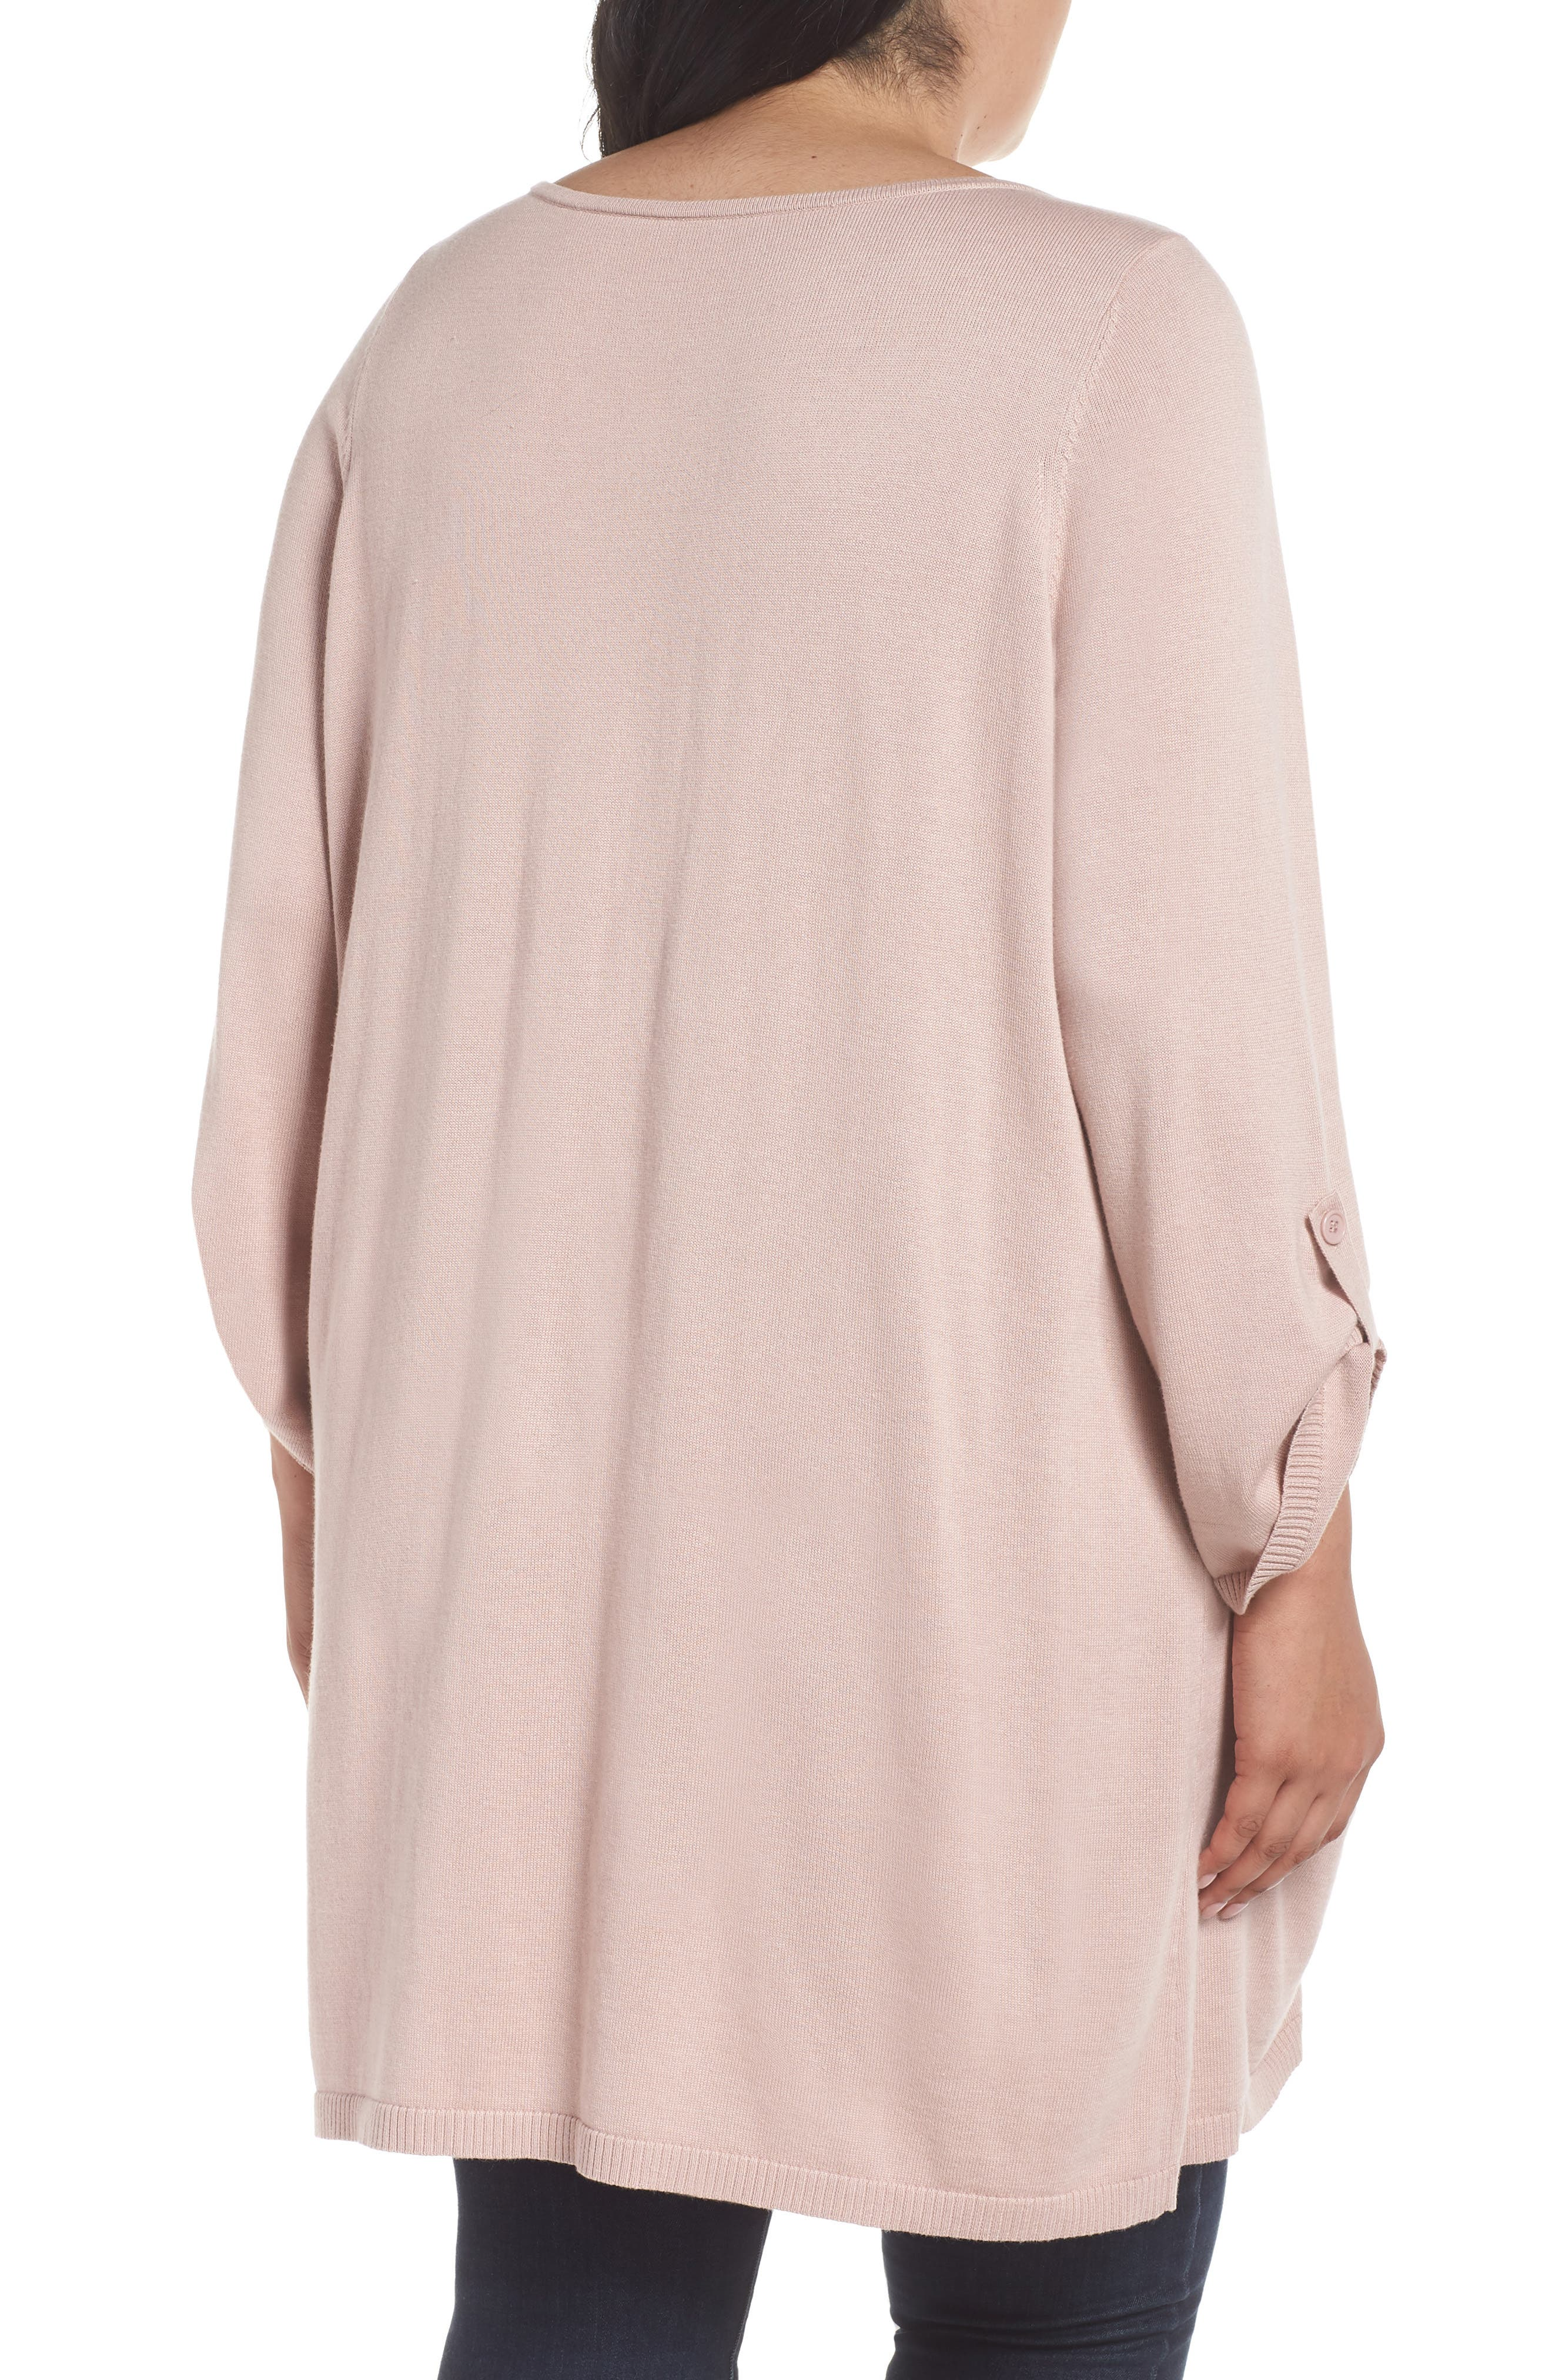 Roll Sleeve Tunic Sweater,                             Alternate thumbnail 2, color,                             PINK ADOBE